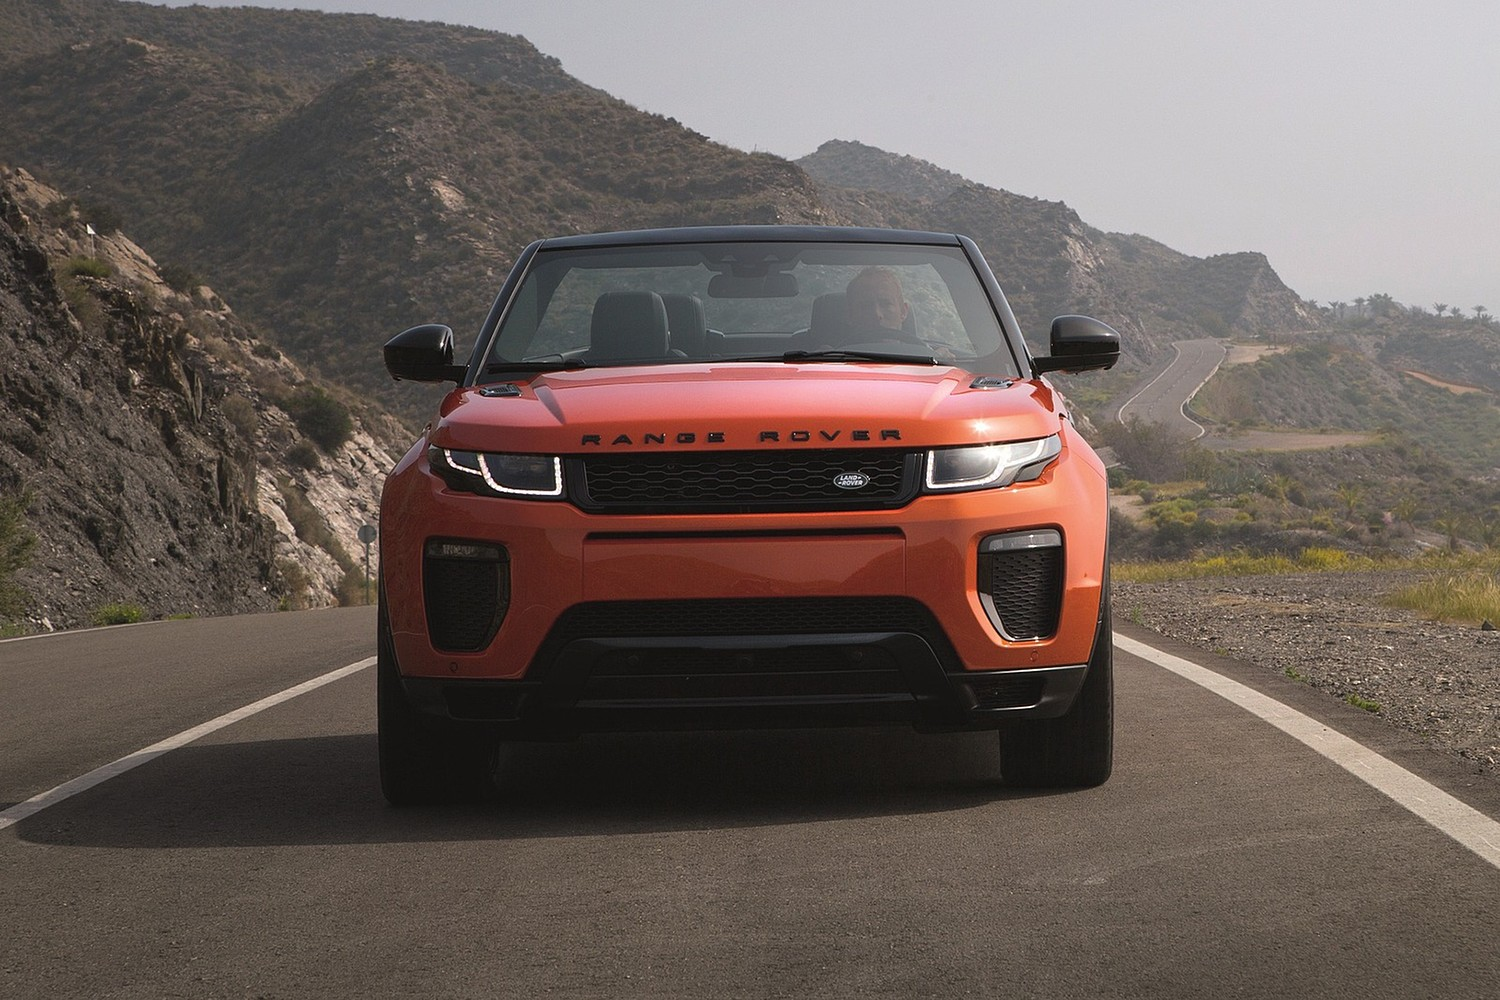 2018 Land Rover Range Rover Evoque HSE Dynamic Convertible SUV Exterior. Options Shown.